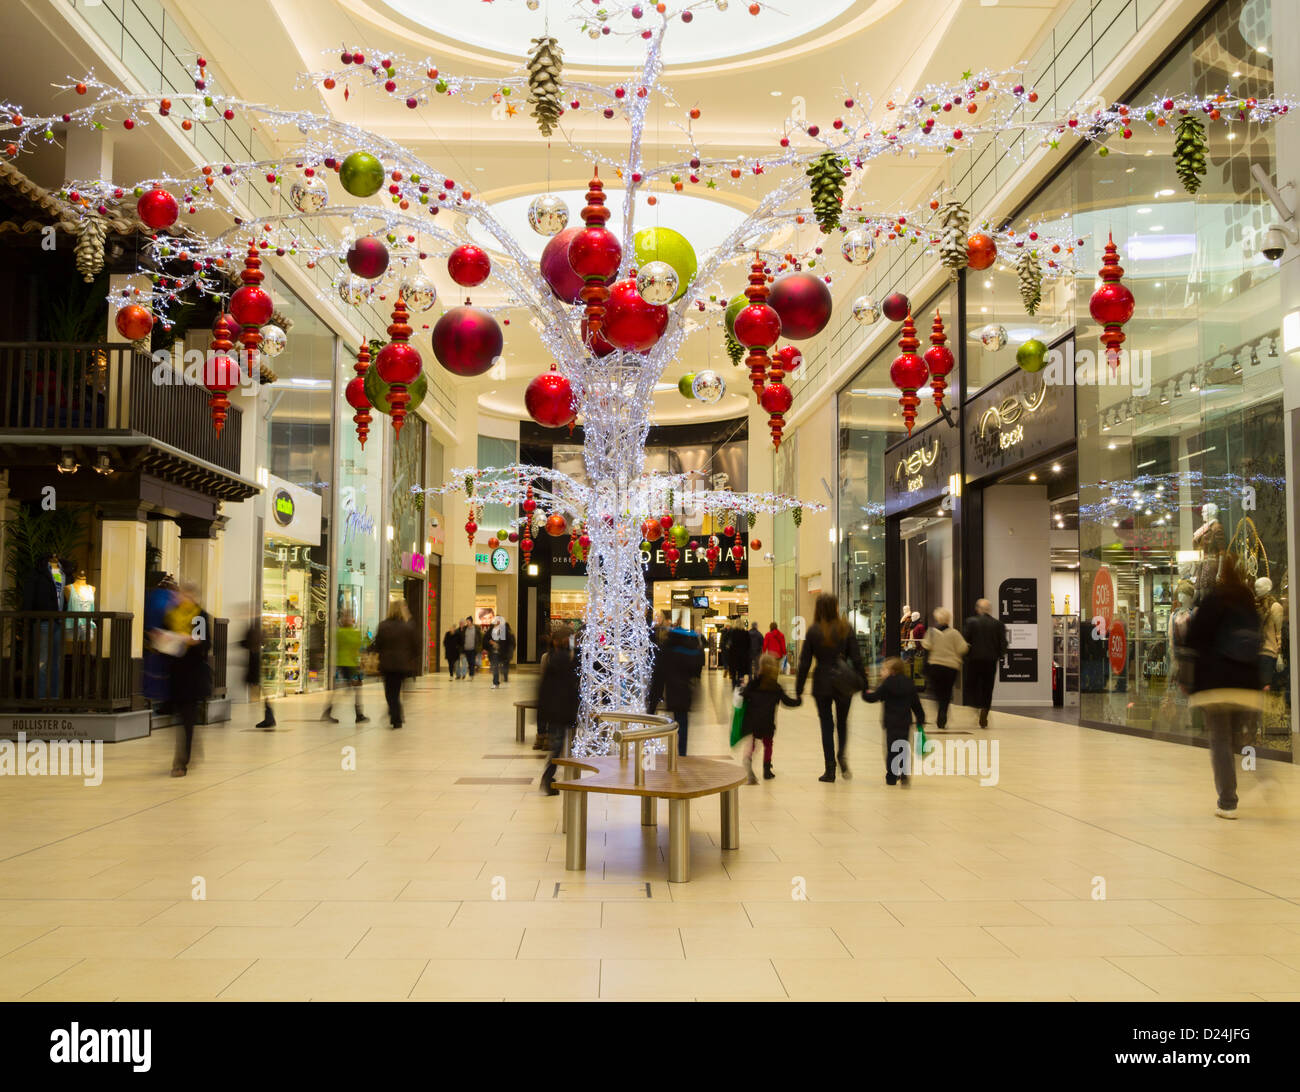 Christmas Shoppers In Eldon Square Shopping Mall In Newcastle Upon